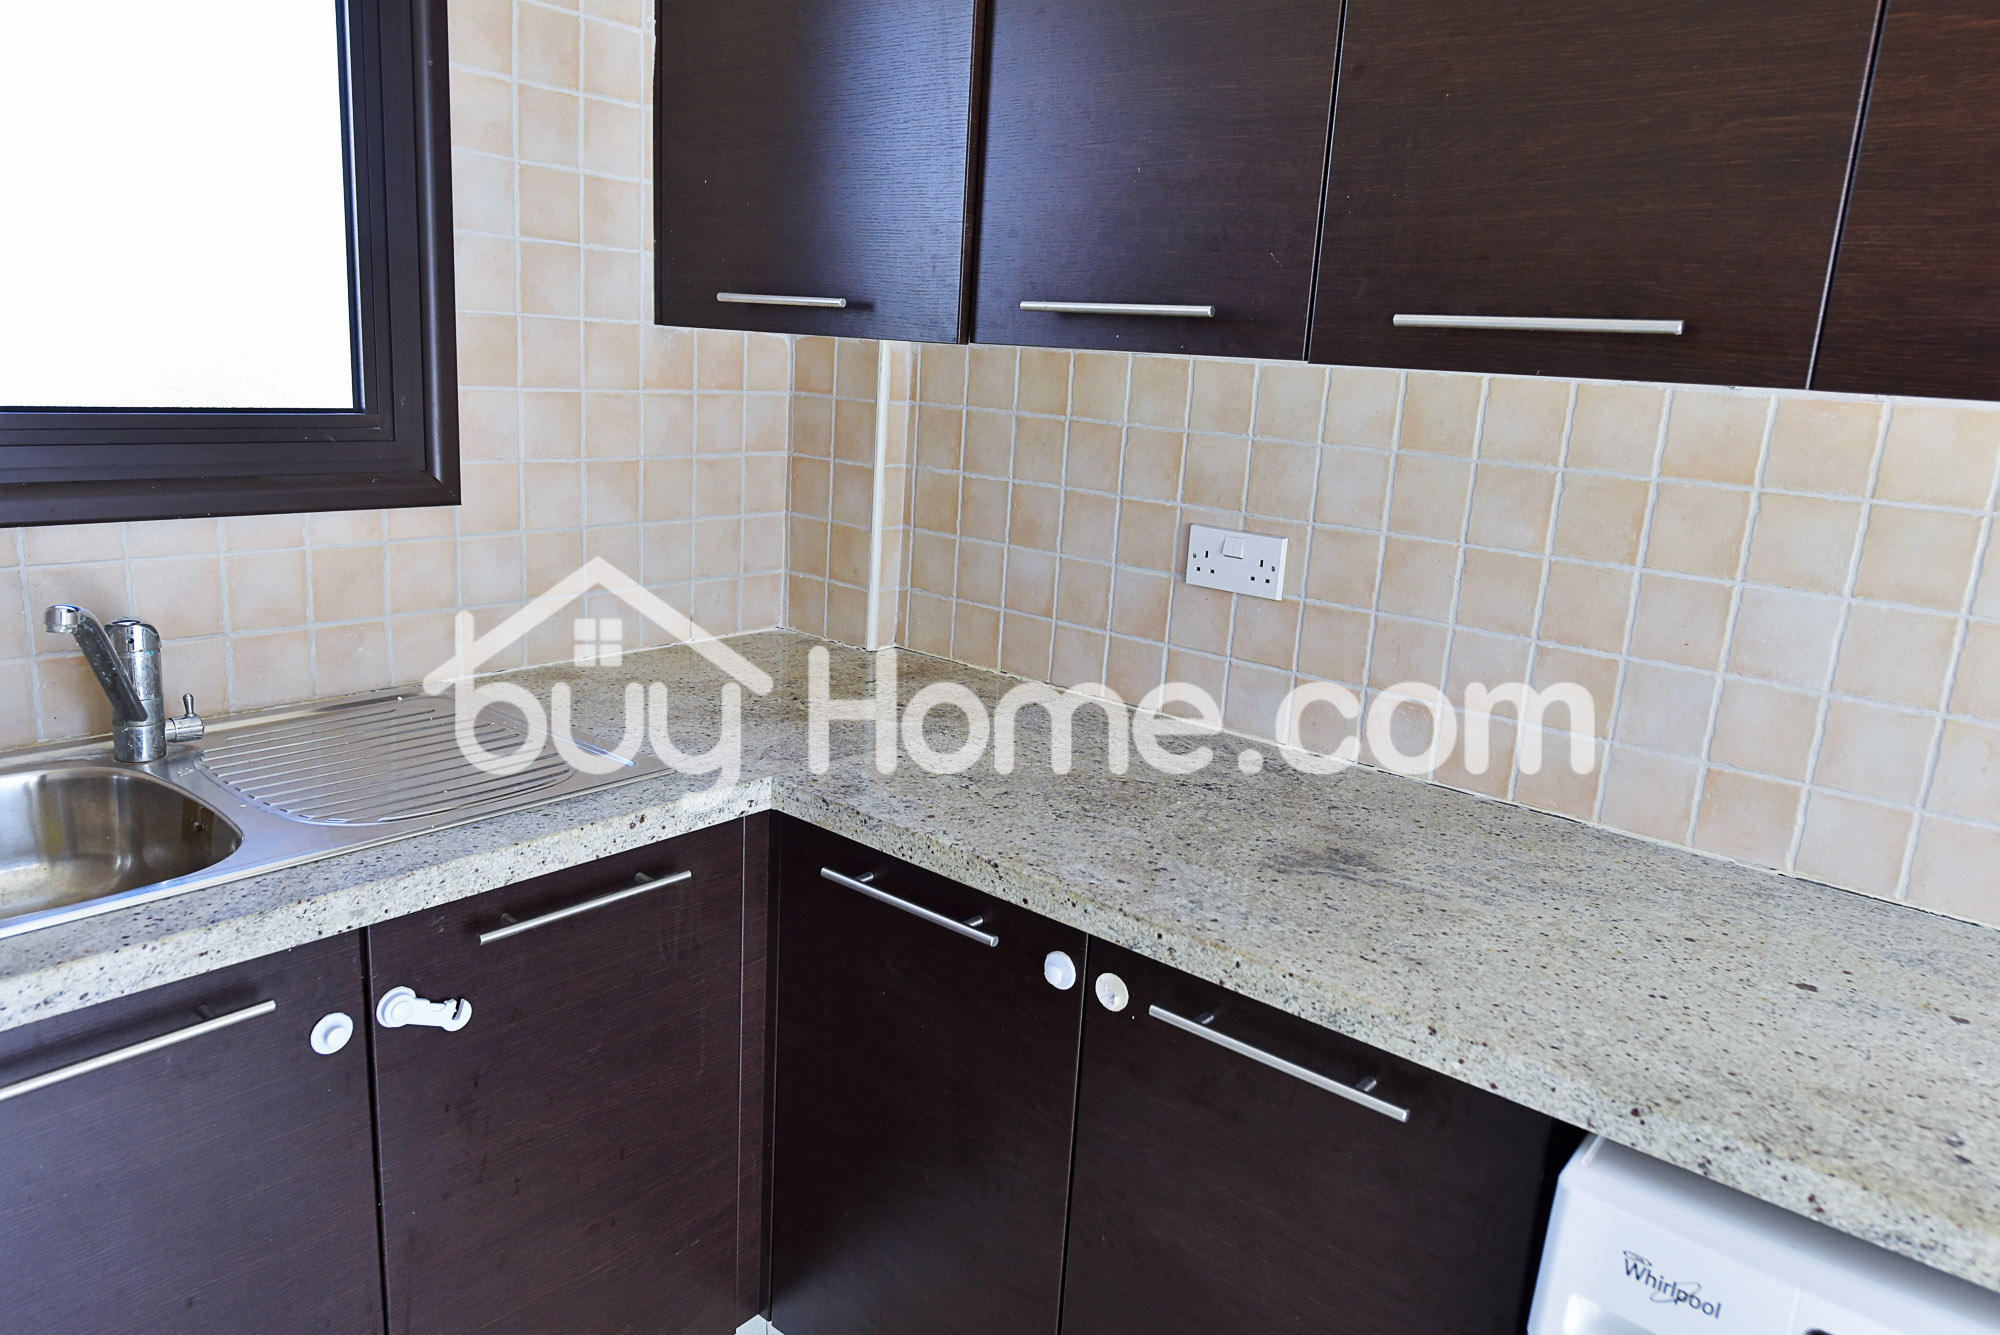 Lovely 4 Bedroom House with Pool | BuyHome